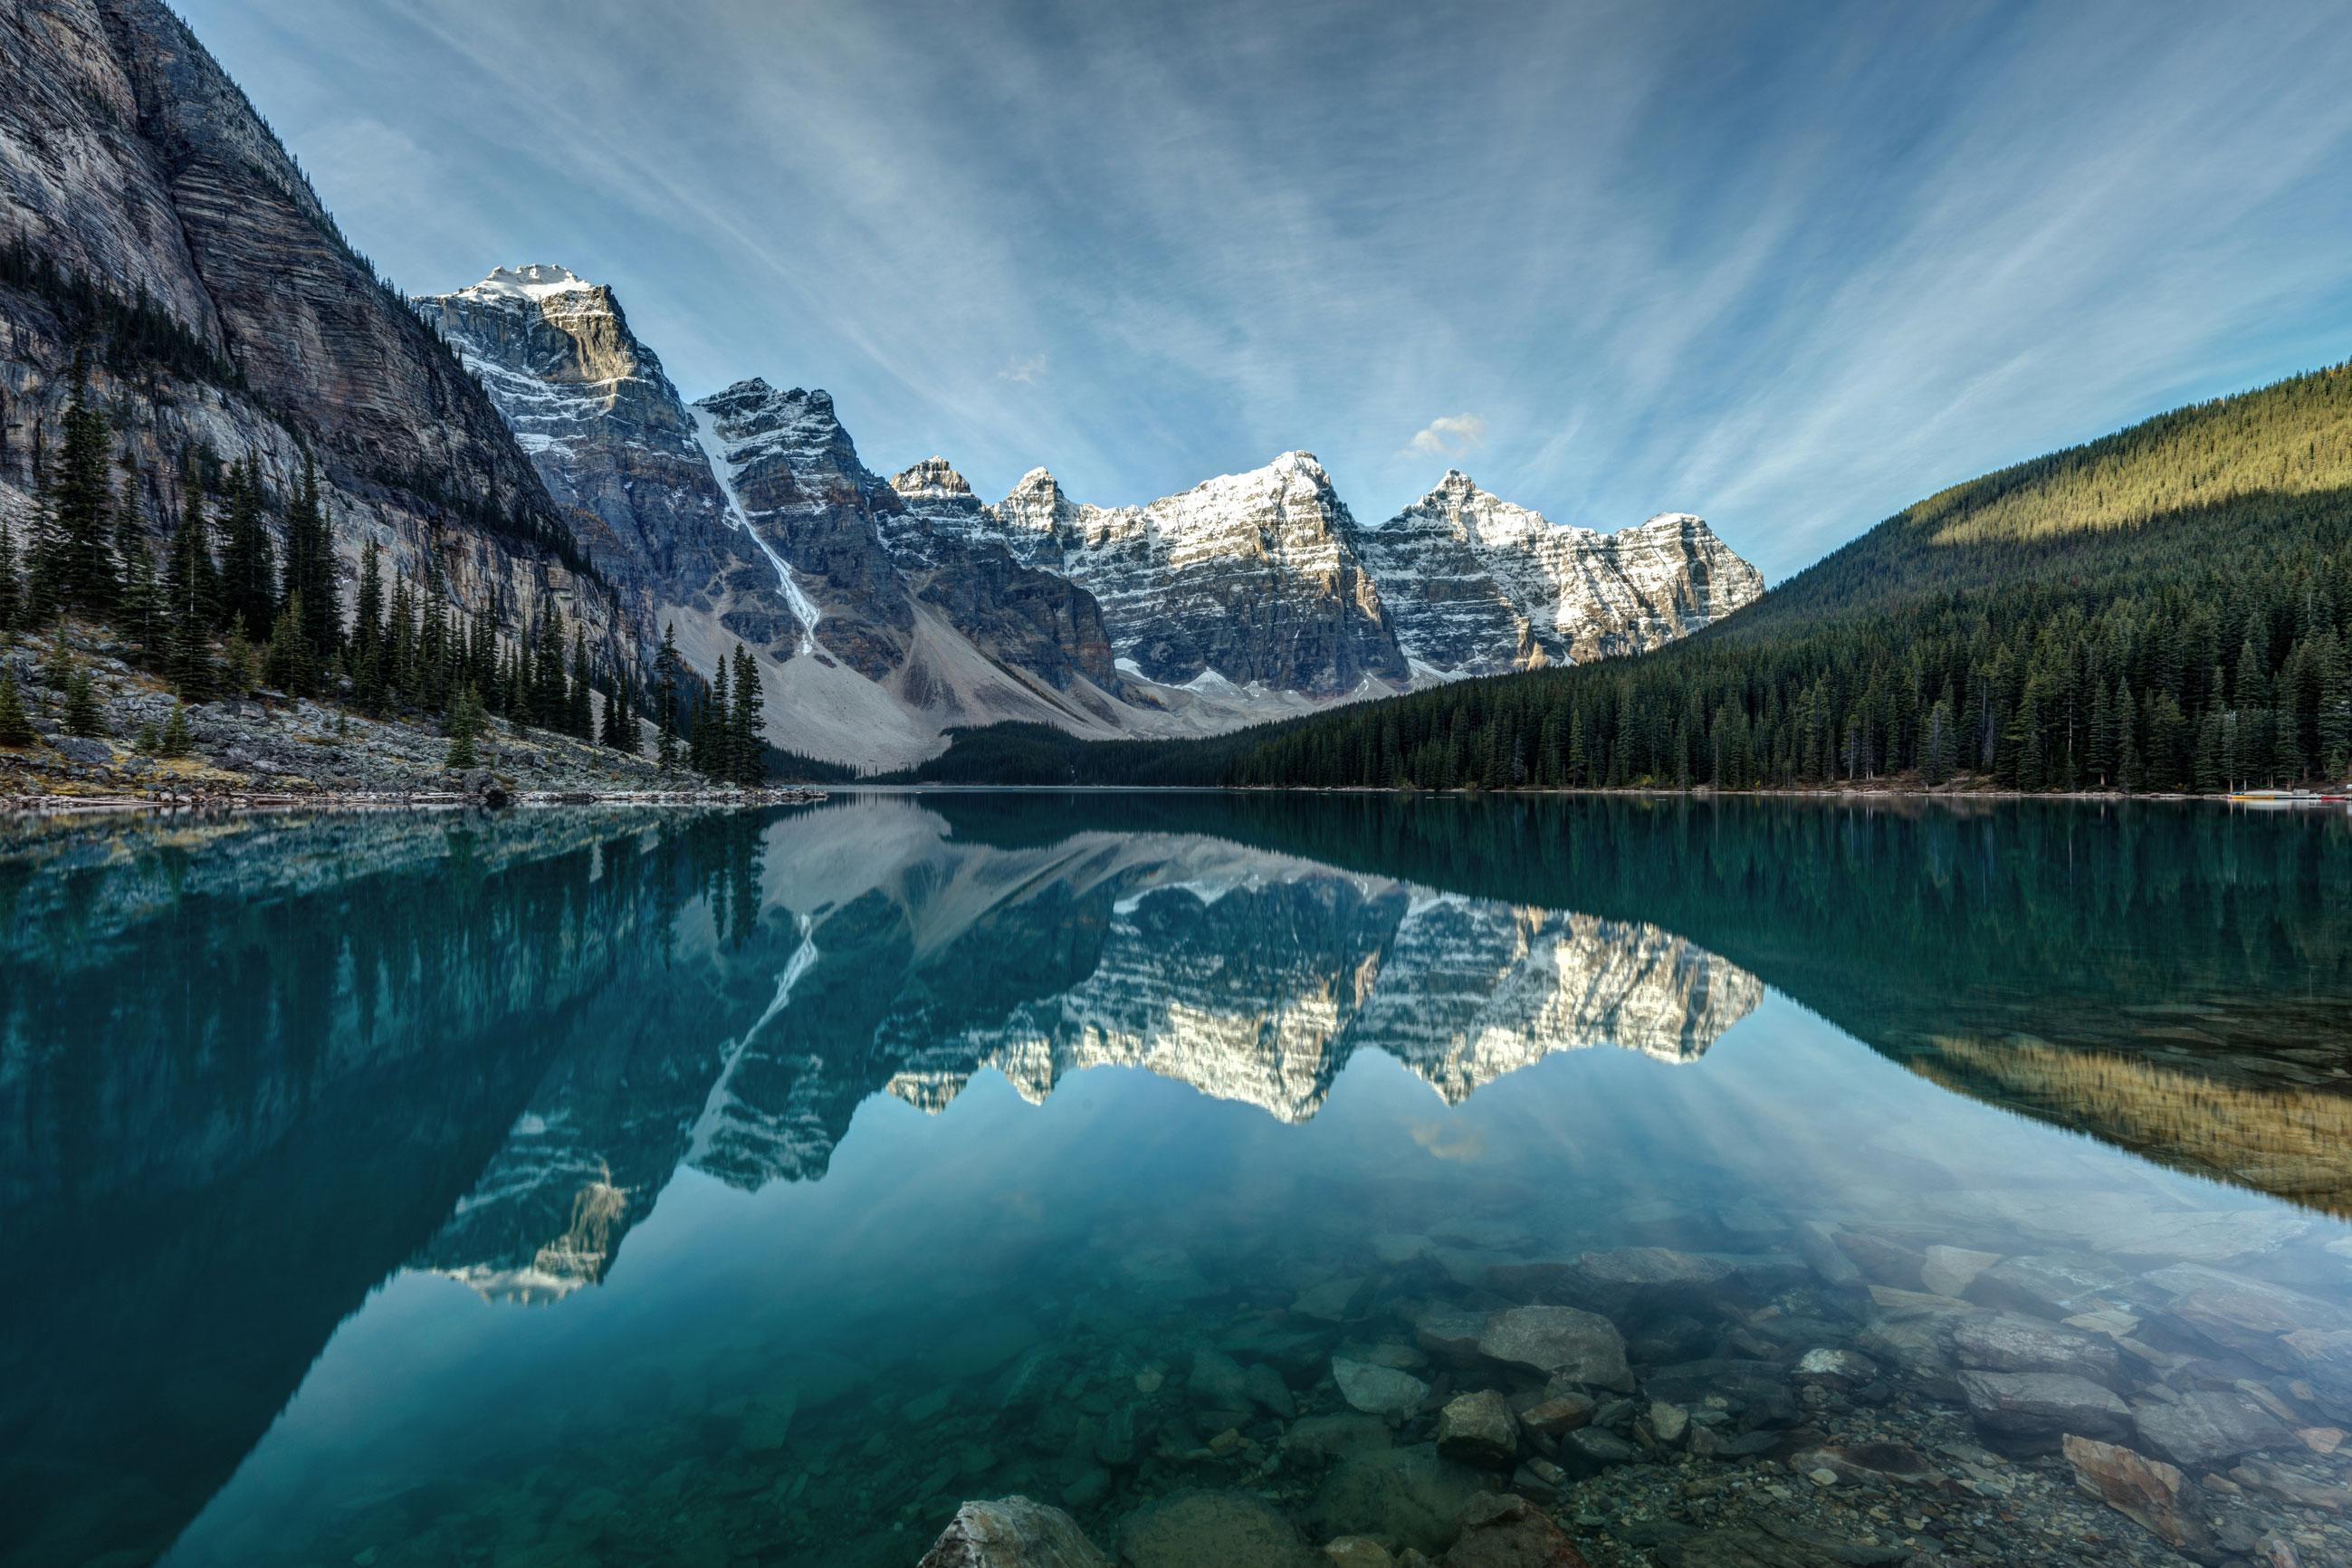 Explore the Rockies from Canada to the USA with North America vacation packages